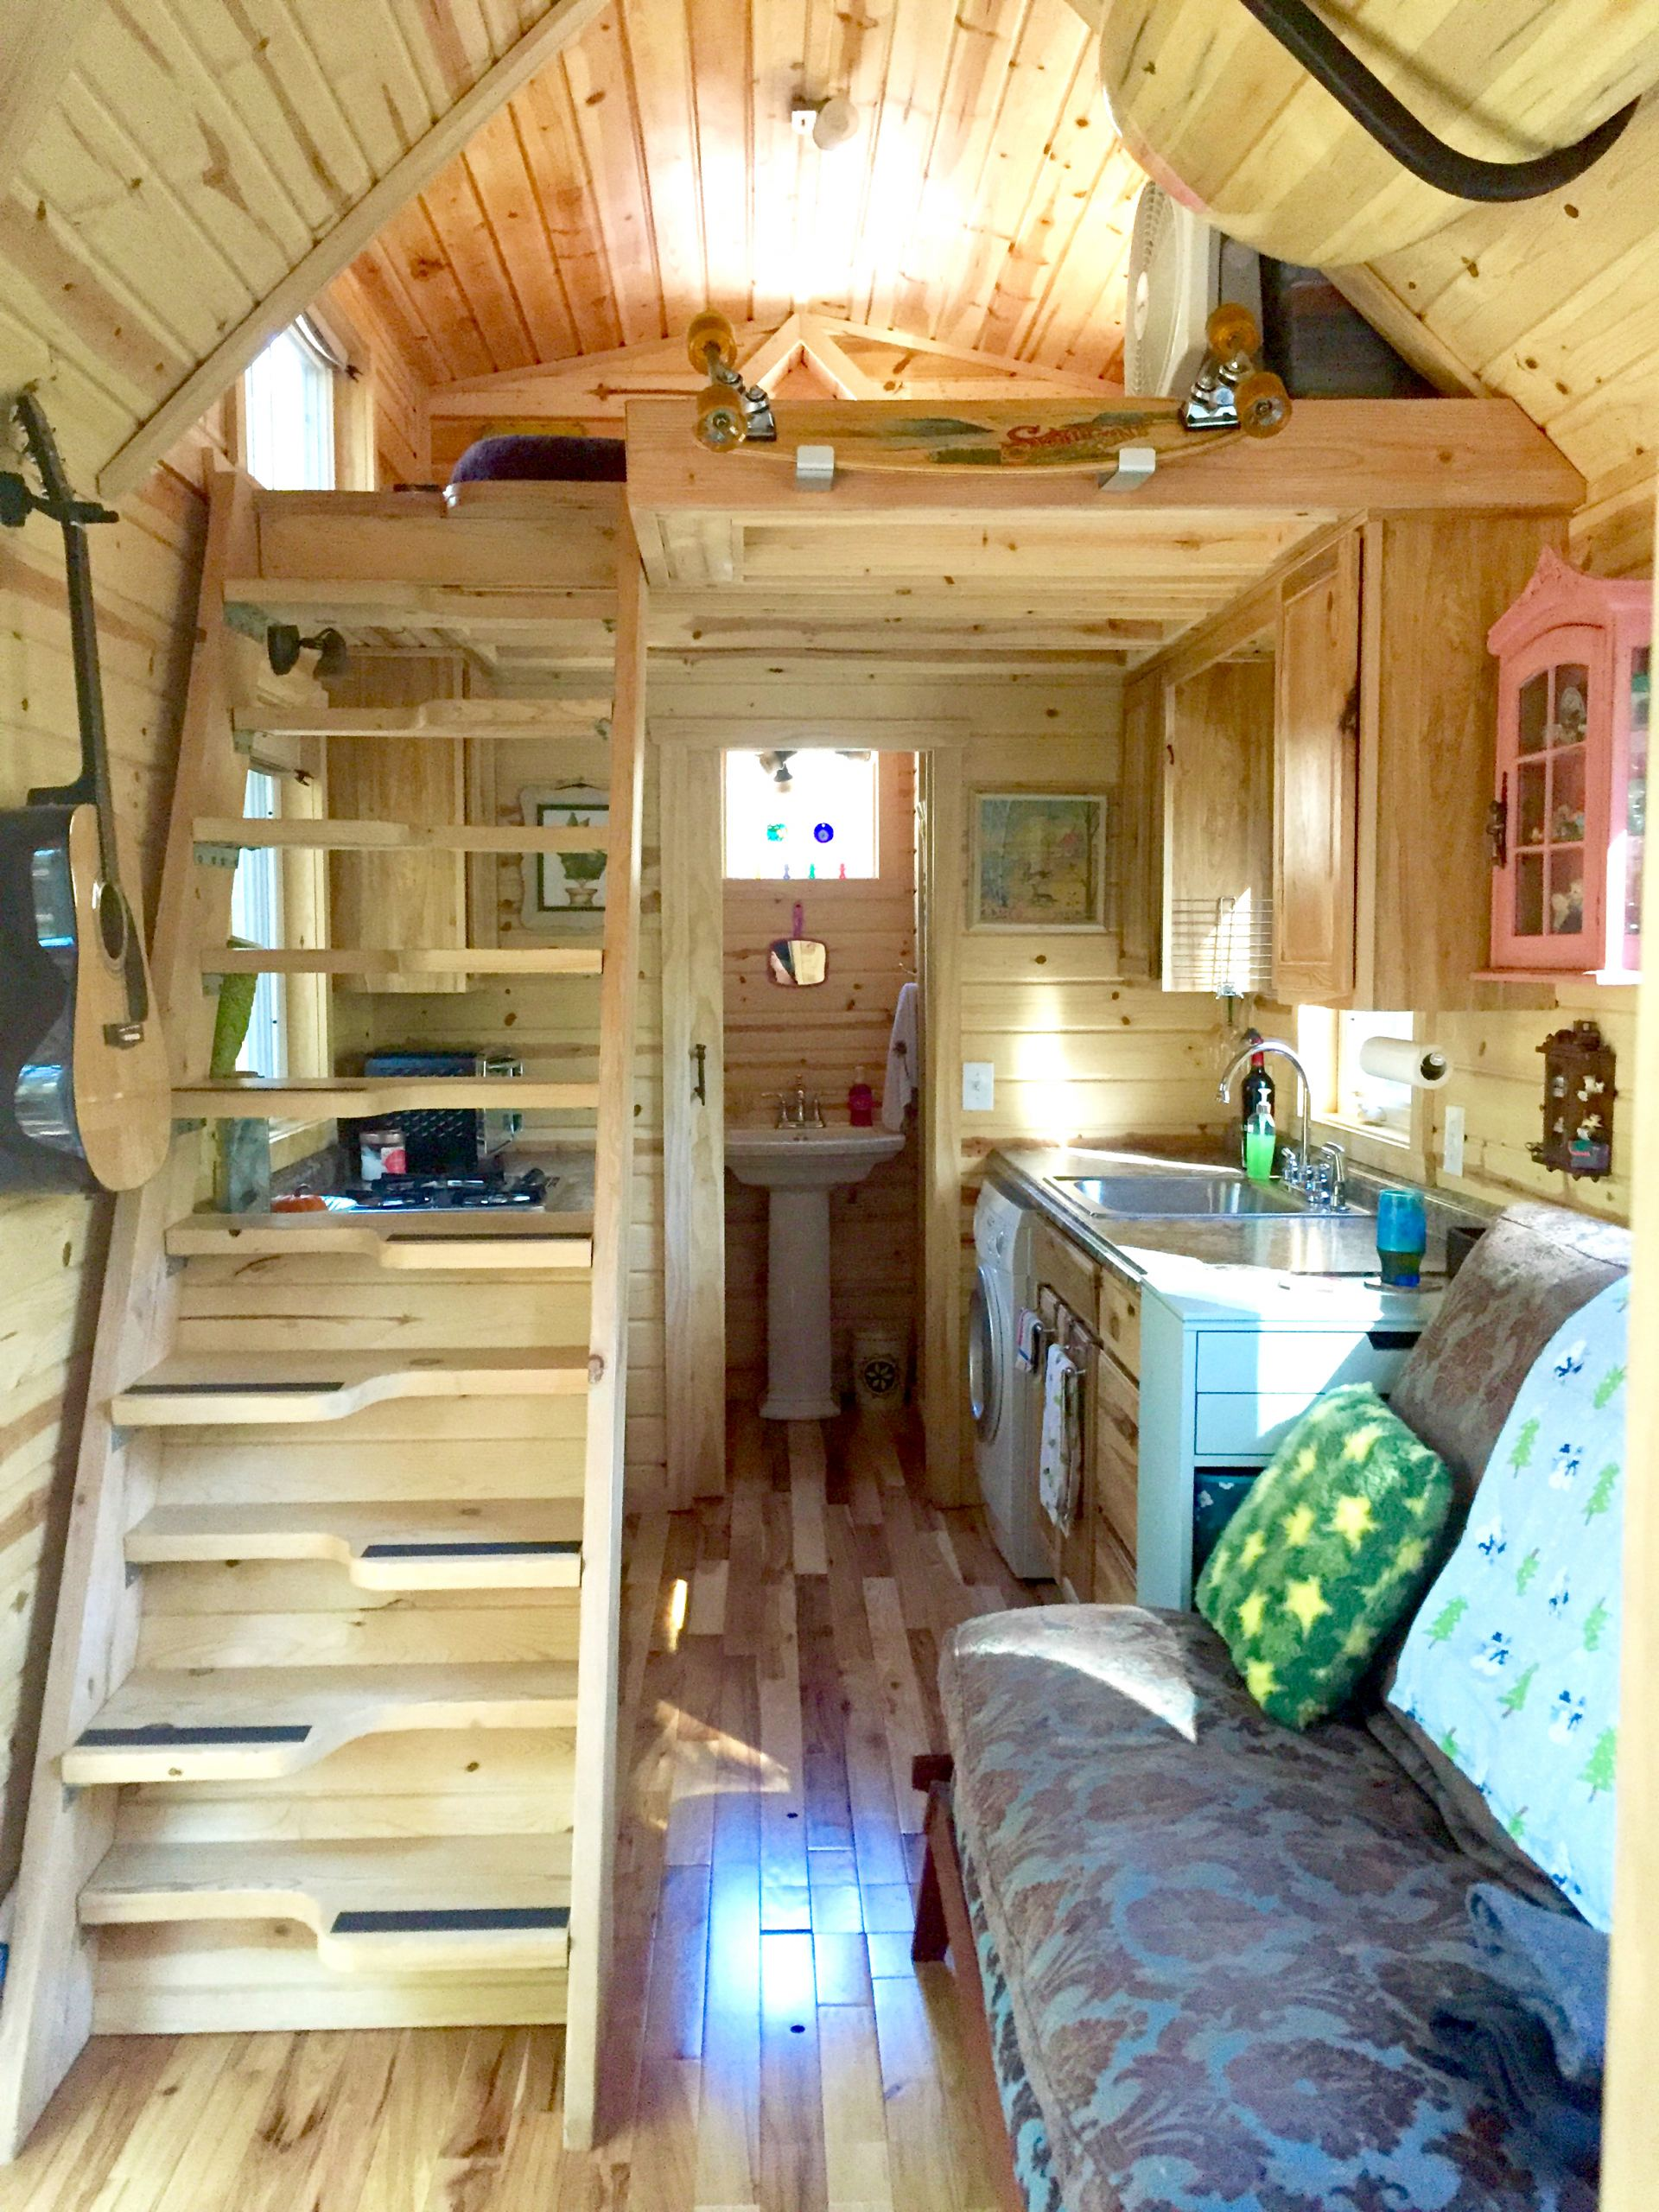 Tiny Home Designs: Nicki's Colorful Victorian Tiny House After One Year